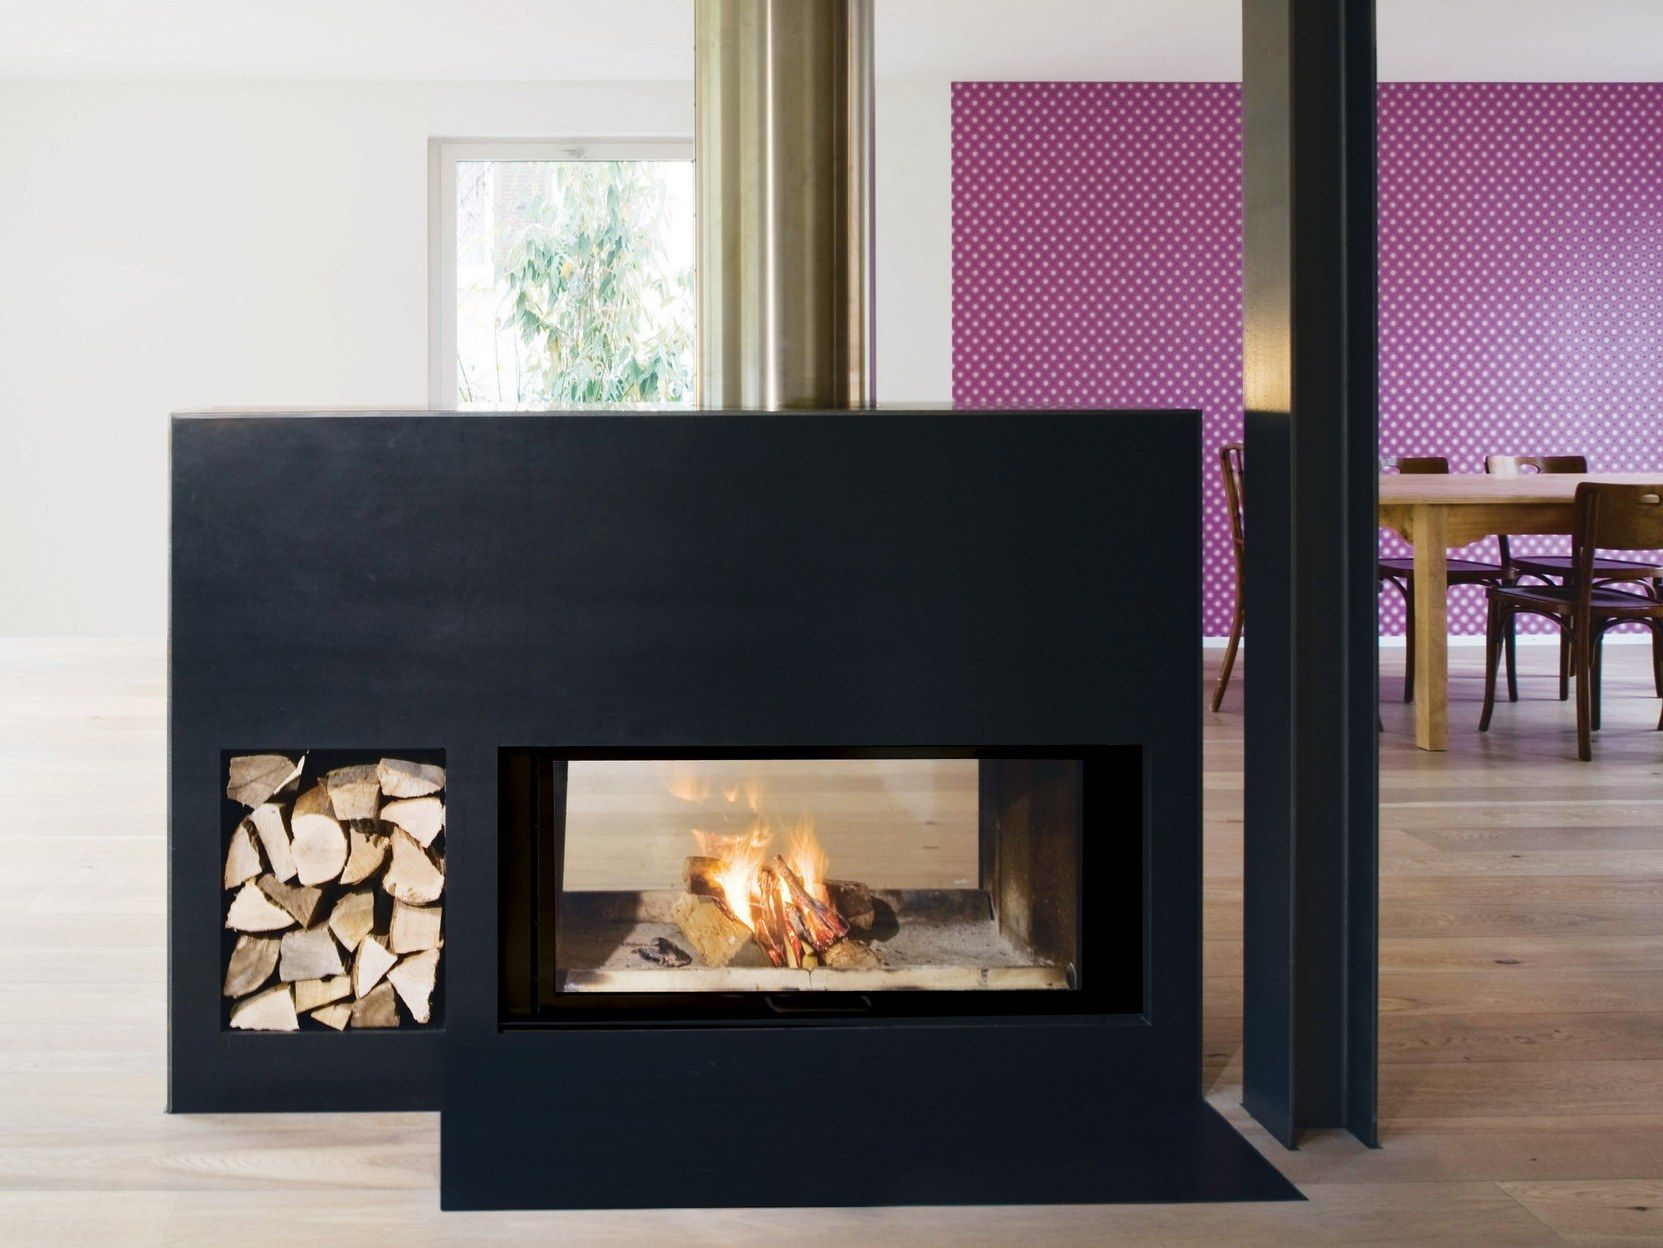 Double Sided Wood Burning Steel Fireplace With Panoramic Glass Neptun By Ruegg In 2020 Fireplace Freestanding Fireplace Double Sided Fireplace